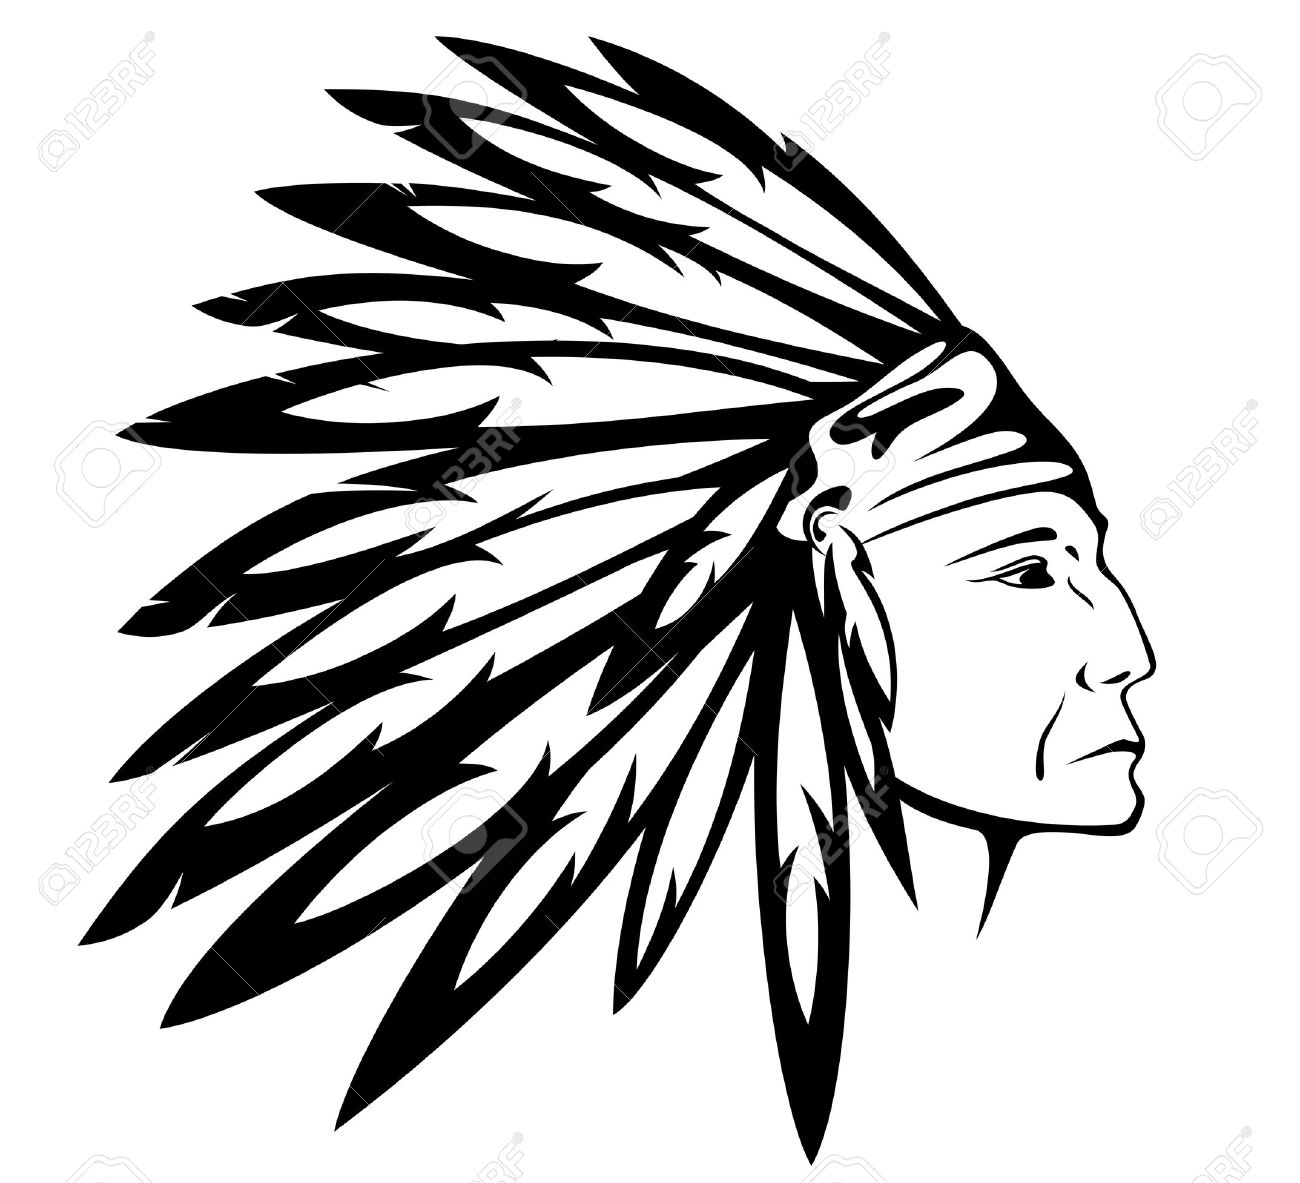 red indian chief wearing traditional headdress royalty free cliparts rh 123rf com indian feather headdress clipart indian headdress clipart free